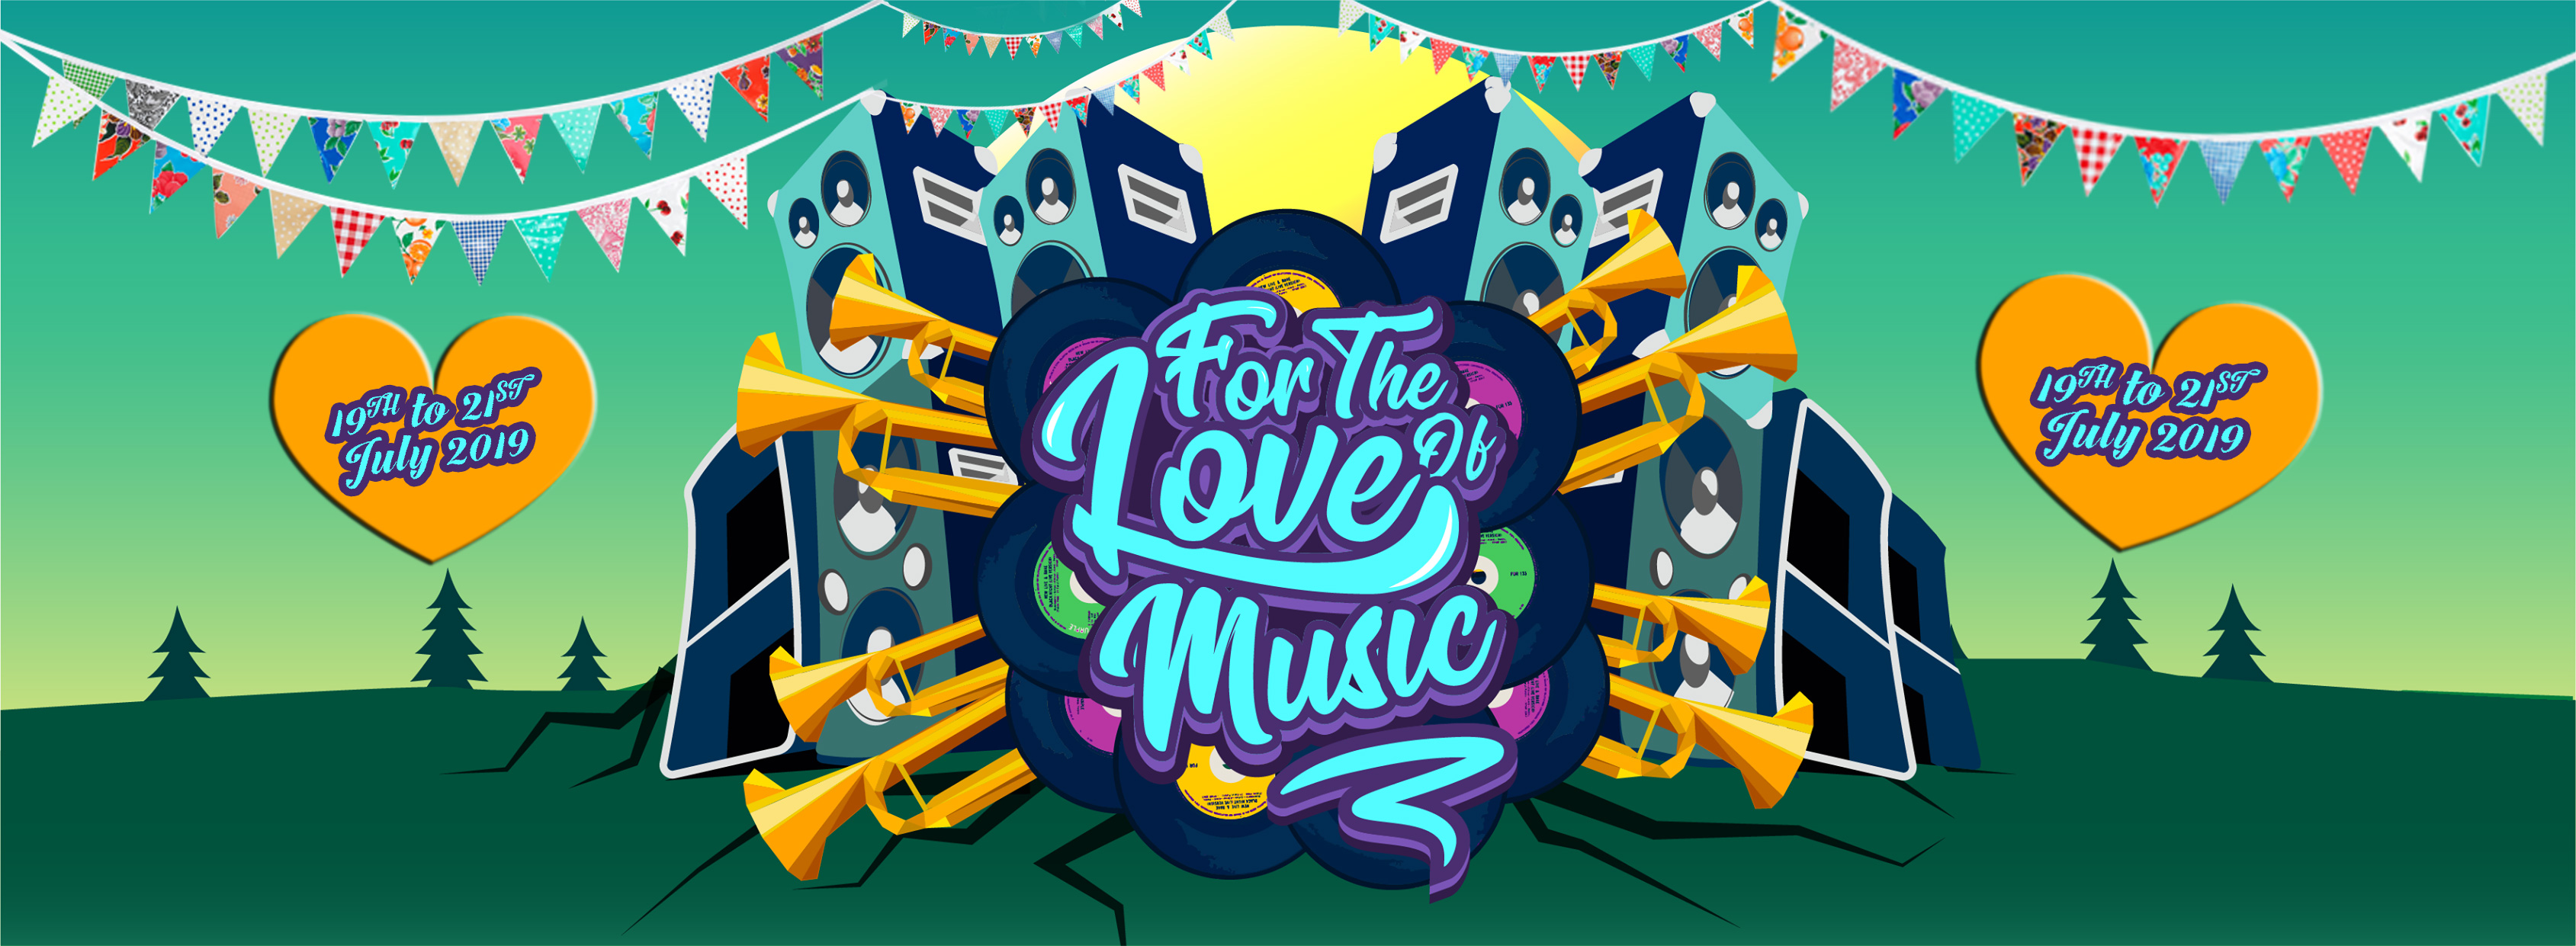 For the Love of Music Festival 2019